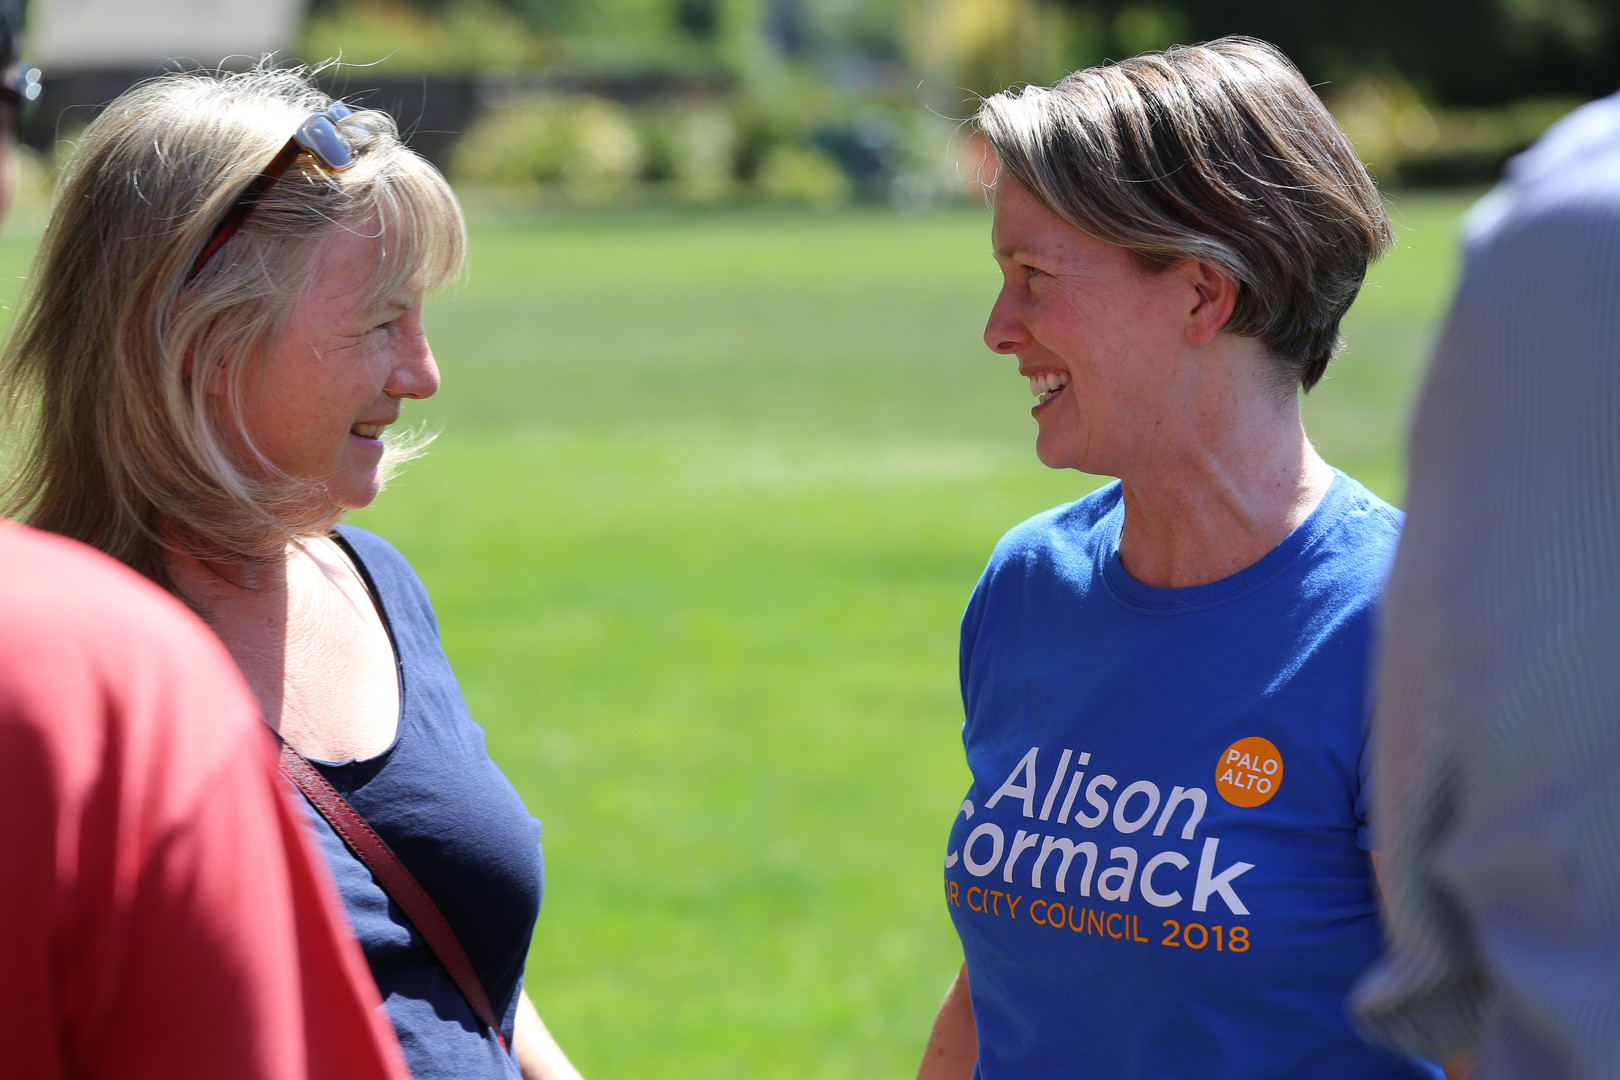 Supporters gather for Alison Cormack for Palo Alto City Council